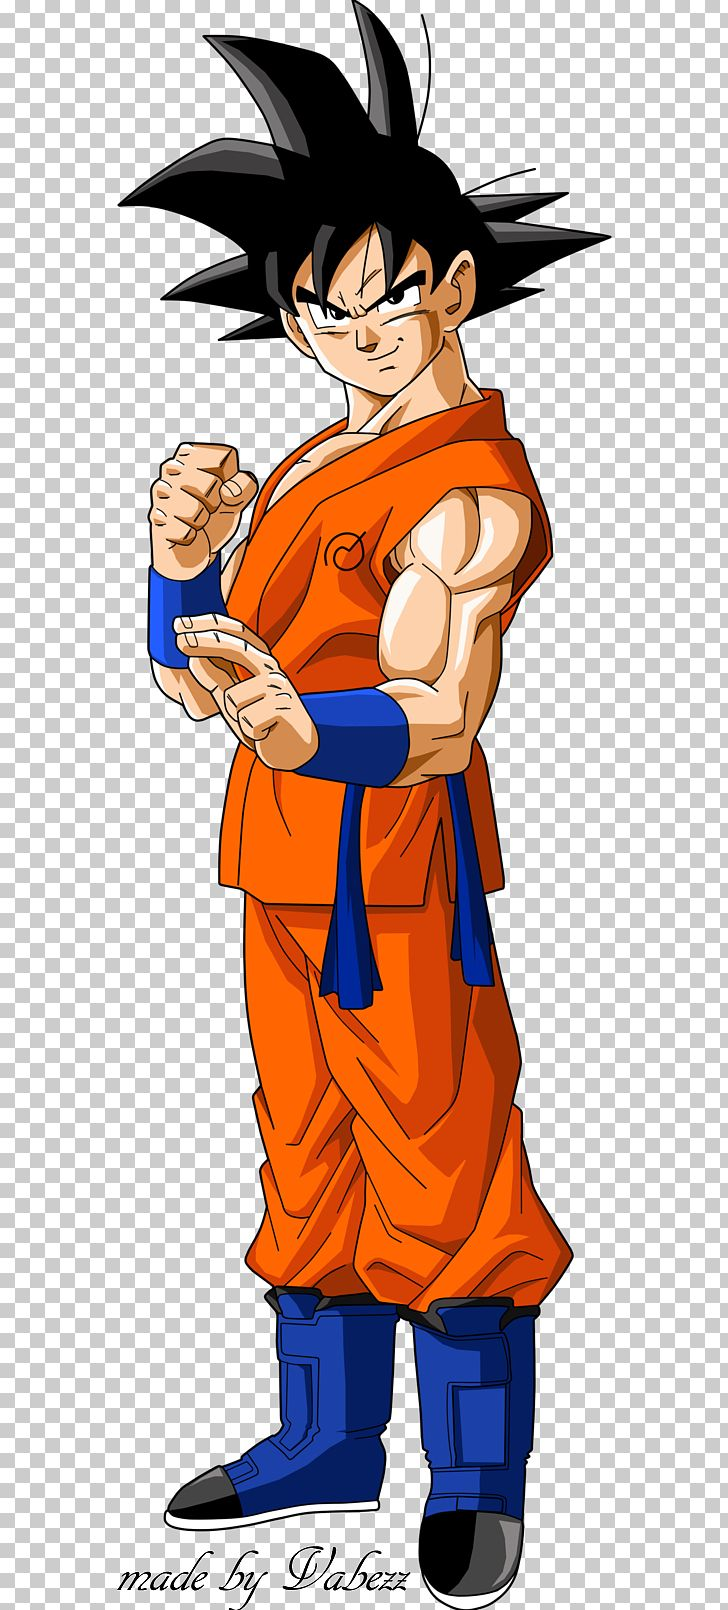 Dragon ball z resurrection f clipart clipart royalty free stock Goku Dragon Ball FighterZ Vegeta Super Dragon Ball Z Gohan PNG ... clipart royalty free stock